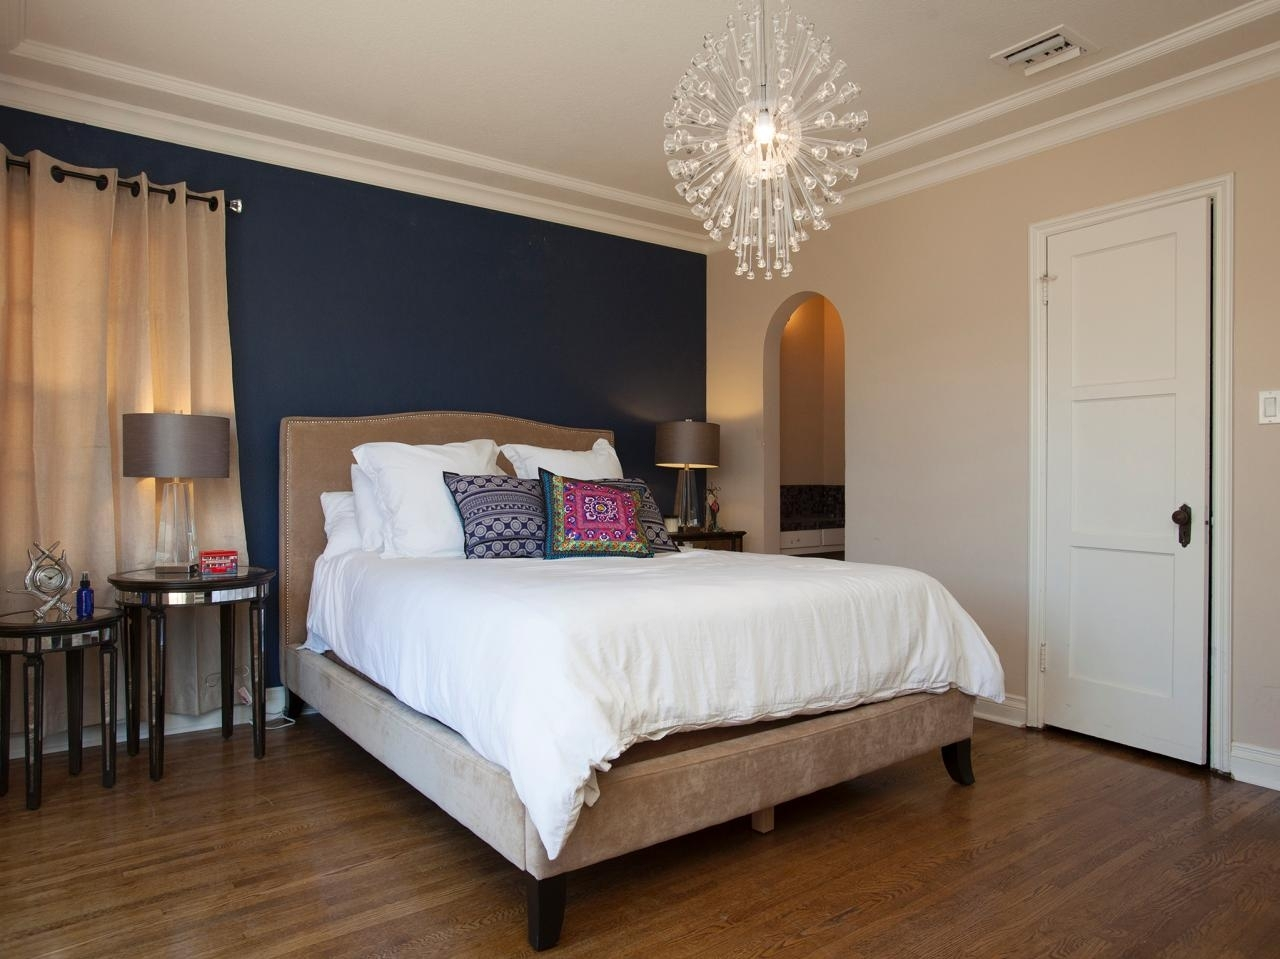 Bedroom | Dark Blue Wall Accent With Burlywood Color Base Intended For 2017 Wall Accents Colors For Bedrooms (View 5 of 15)